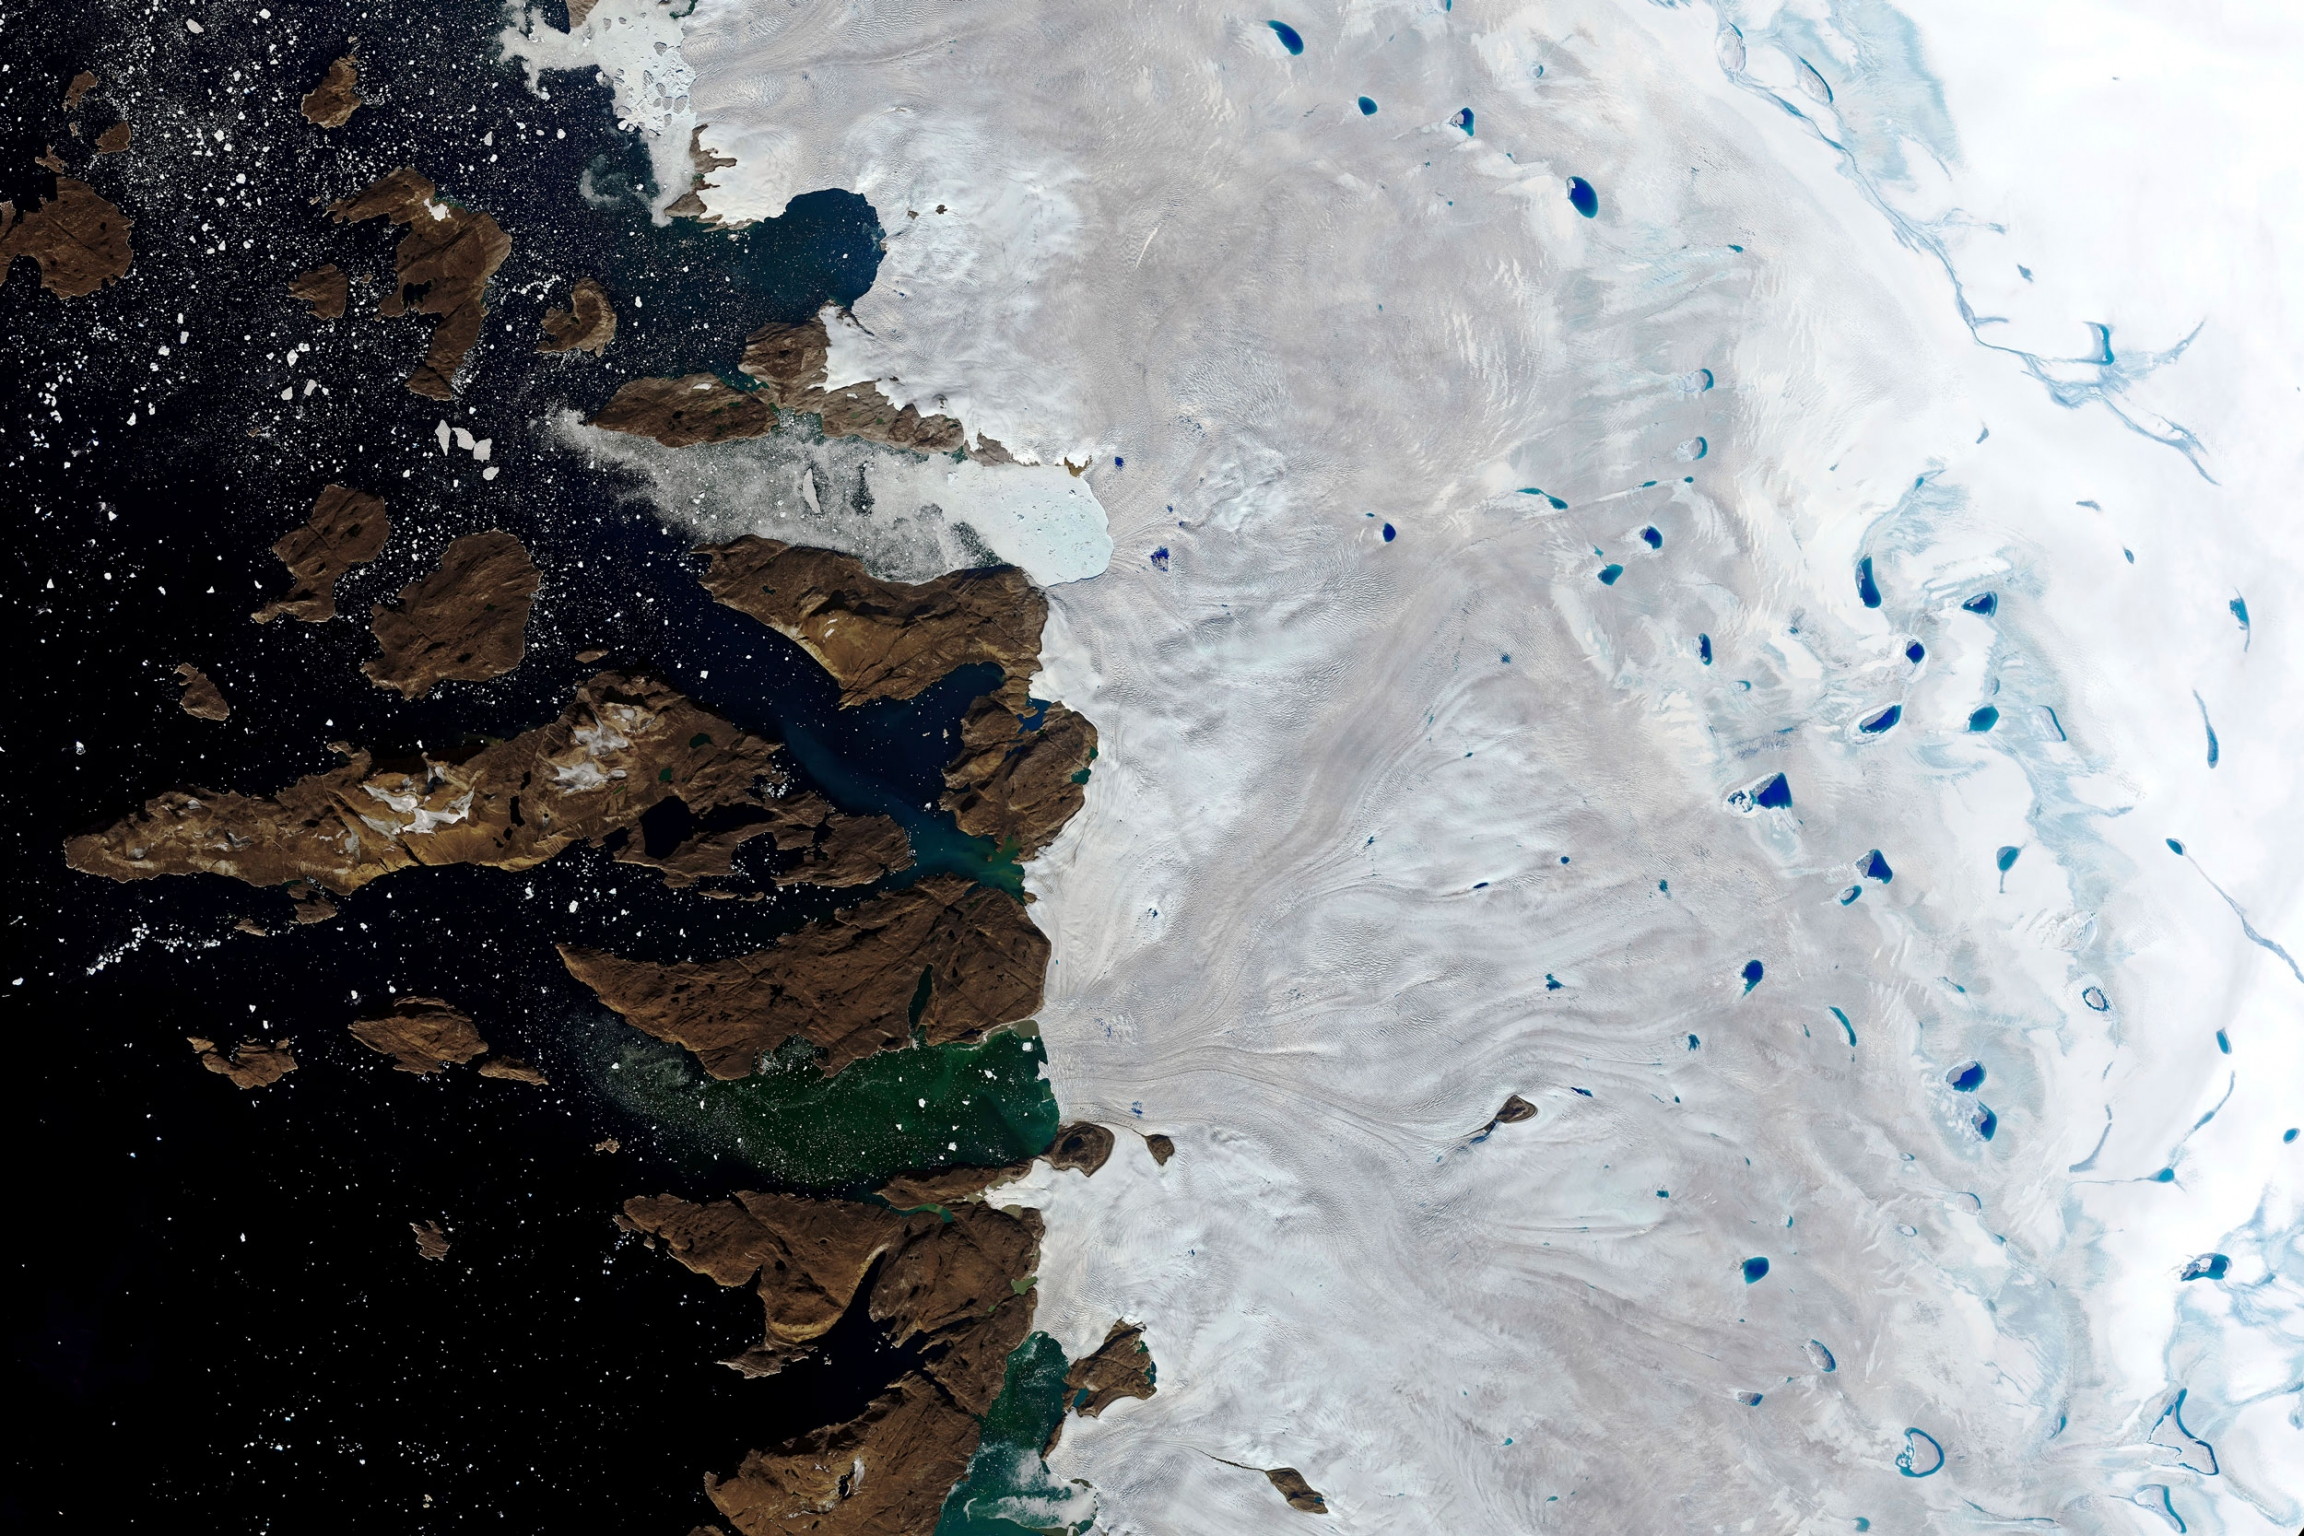 This Monday, July 30, 2019 natural-color image made with the Operational Land Imager (OLI) on the Landsat 8 satellite shows meltwater collecting on the surface of the ice sheet in northwest Greenland near the sheet's edge.